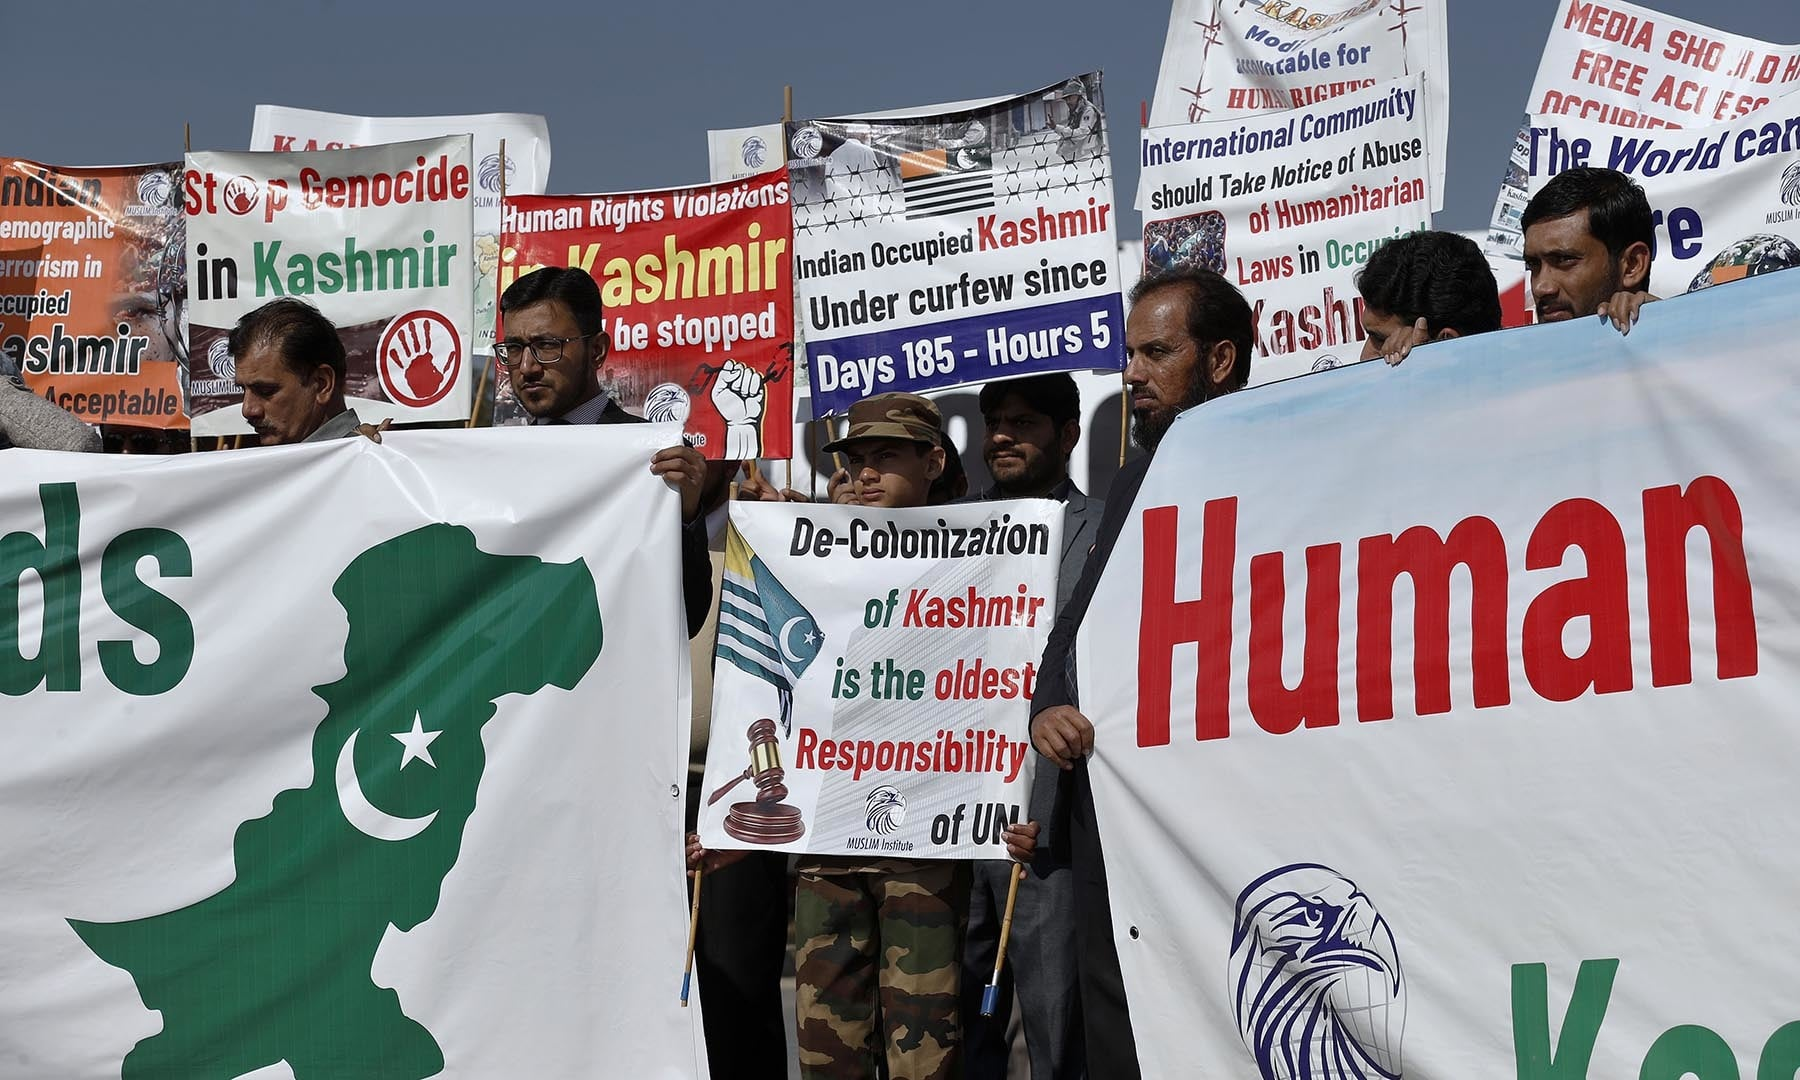 People take part in a rally in Islamabad to express solidarity with Kashmiris. — AP